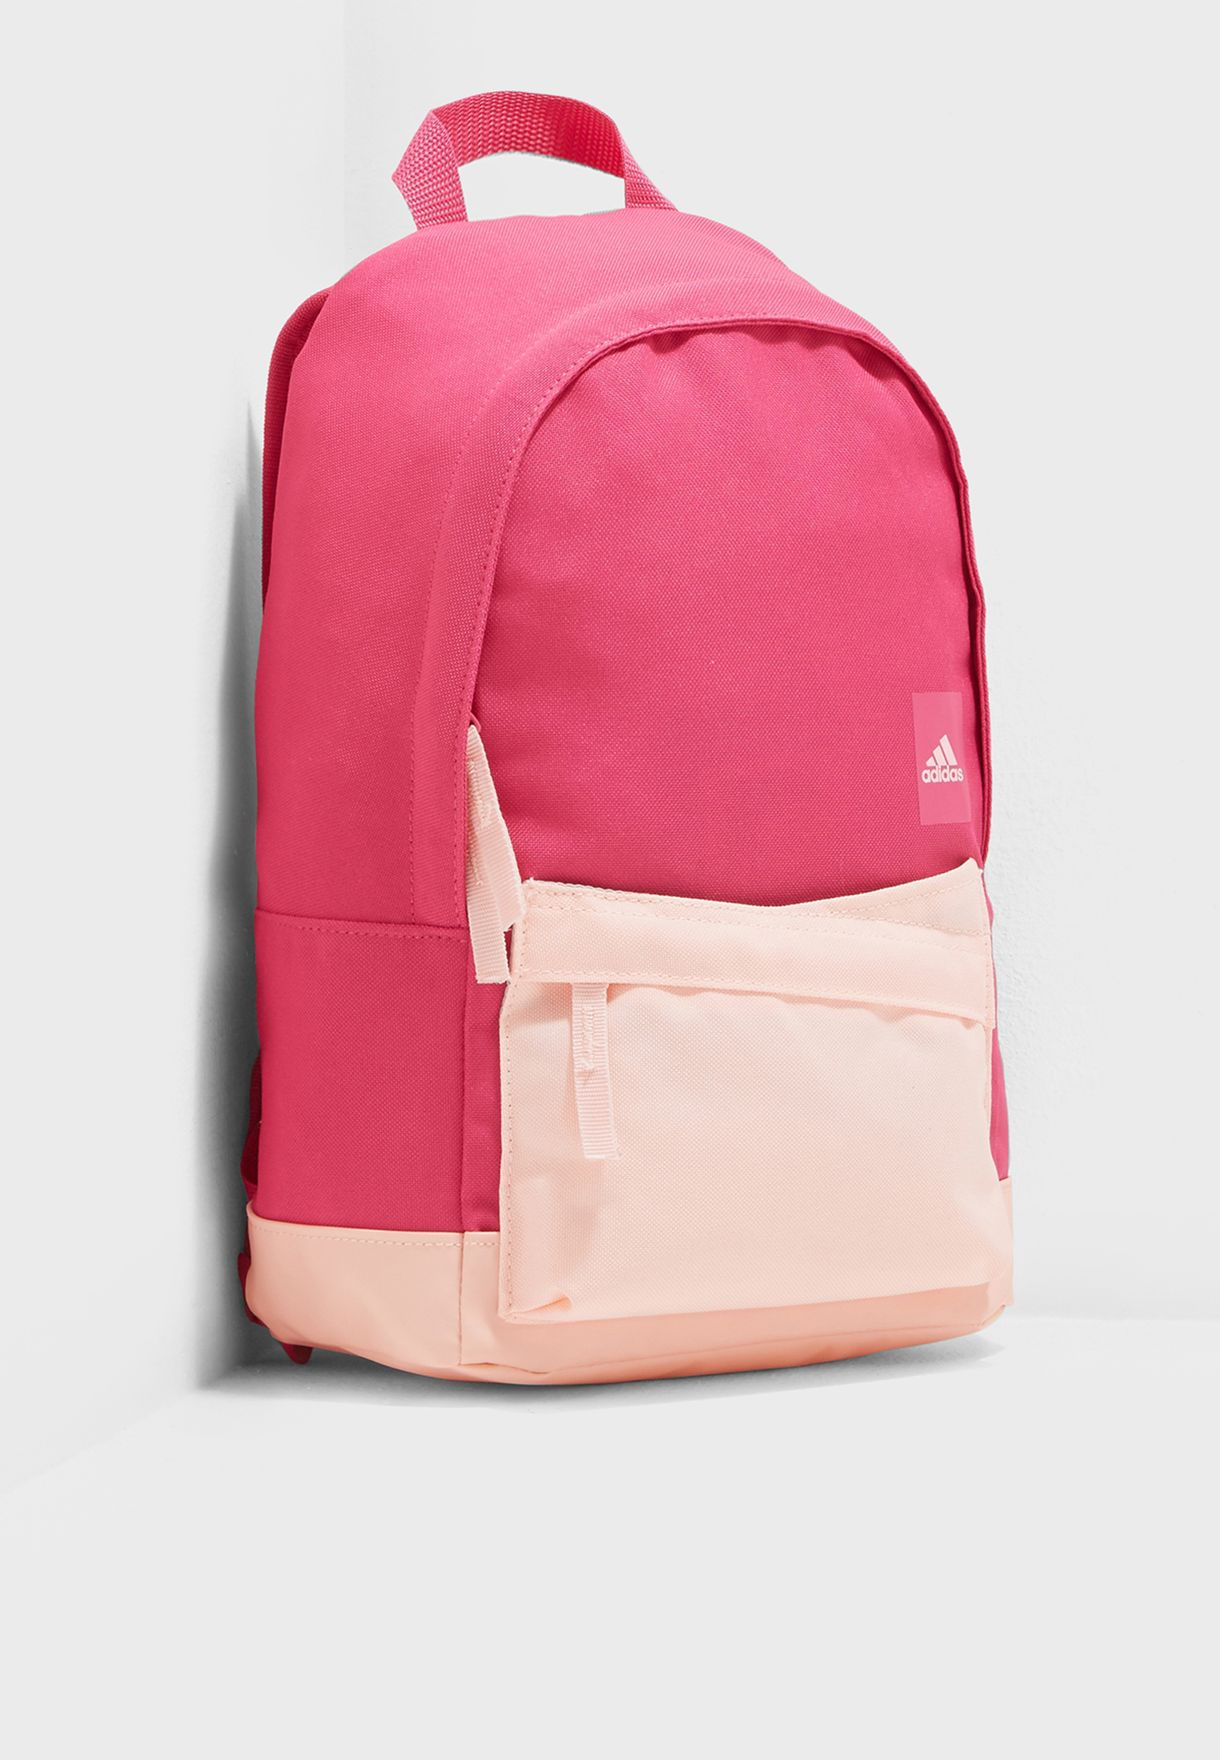 Mil millones Adjunto archivo apetito  Buy adidas pink Classic Extra Small Backpack for Kids in MENA, Worldwide |  DM5567